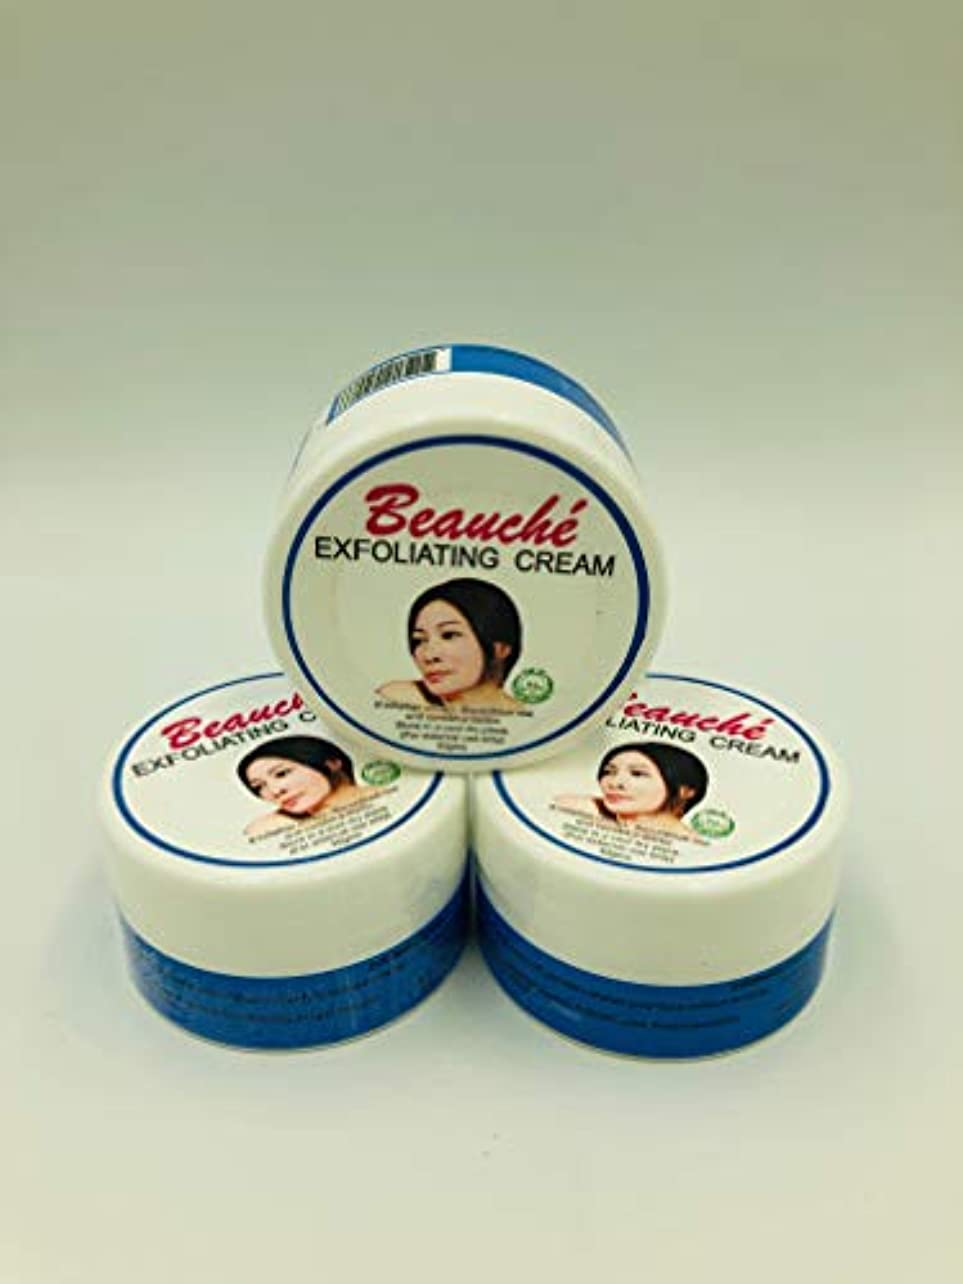 ペンス腹痛観客Beauche Cream 10g (Exfoliating Cream3個)